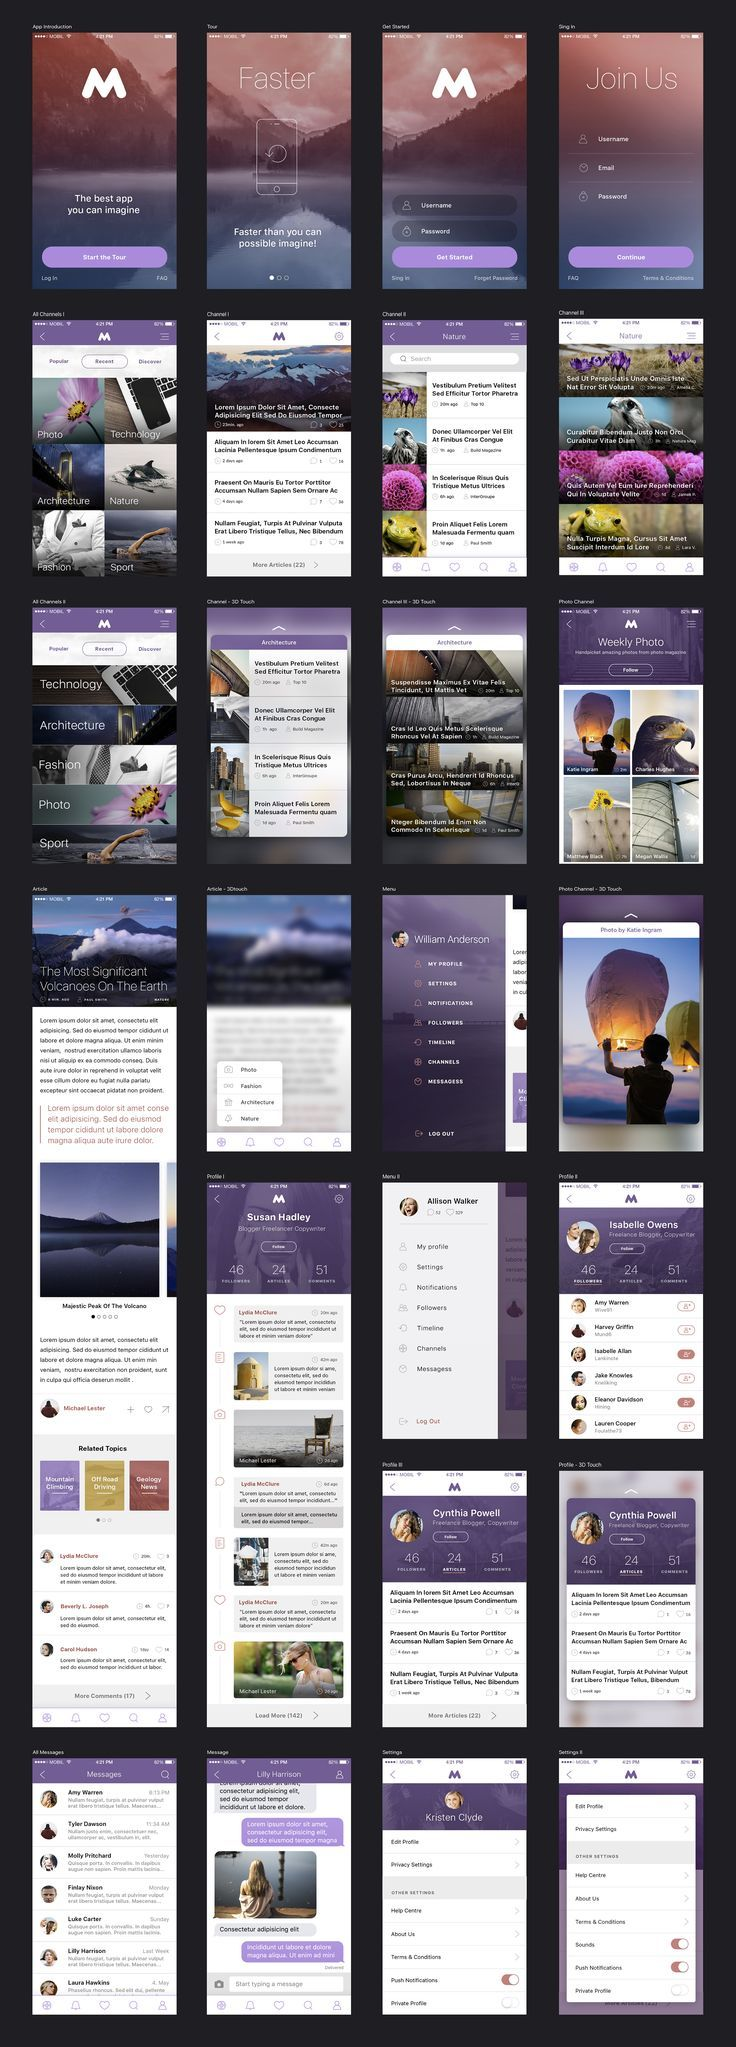 Megap - iOS Template by MK Templates on @creativemarket